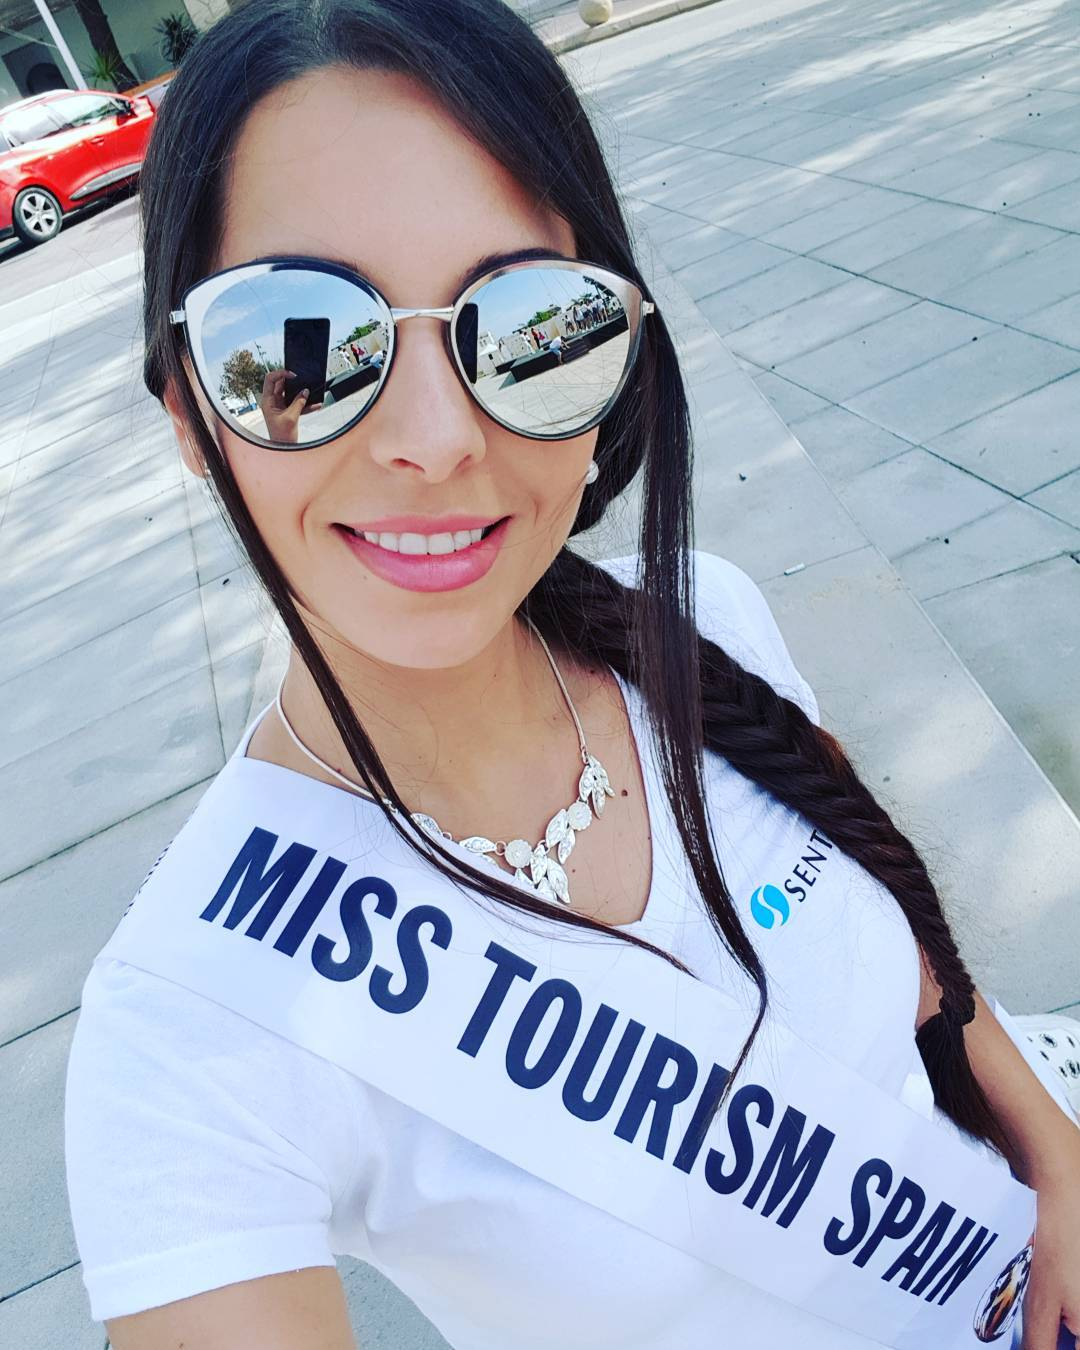 rafaella candida, top 15 de miss tourism 2017/2018. 22580510